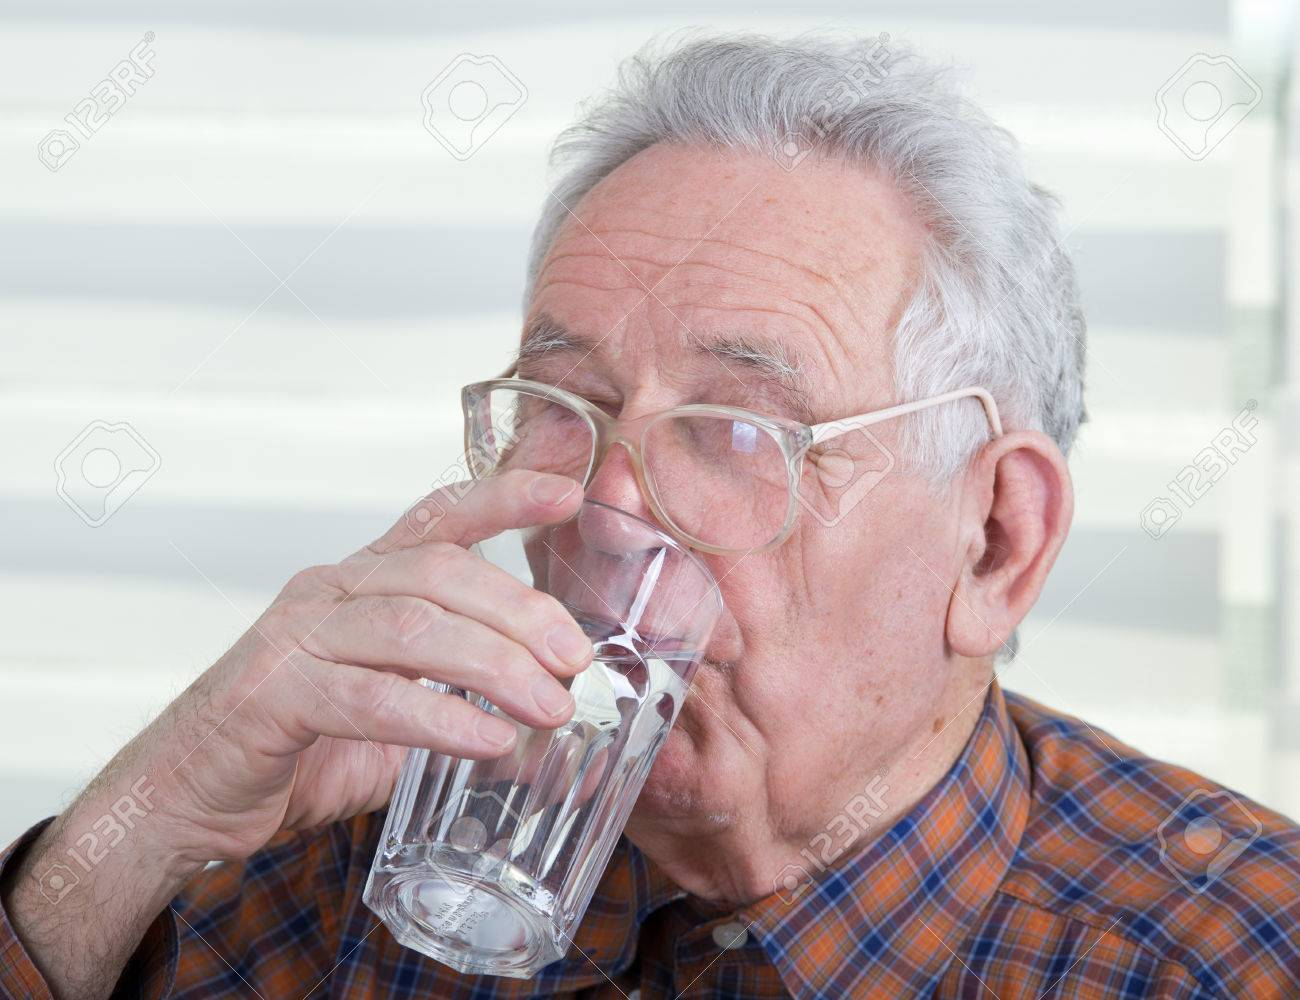 Old Man With Reading Glasses Holds And Drinks Glass Of Water Stock Photo,  Picture And Royalty Free Image. Image 25893196.